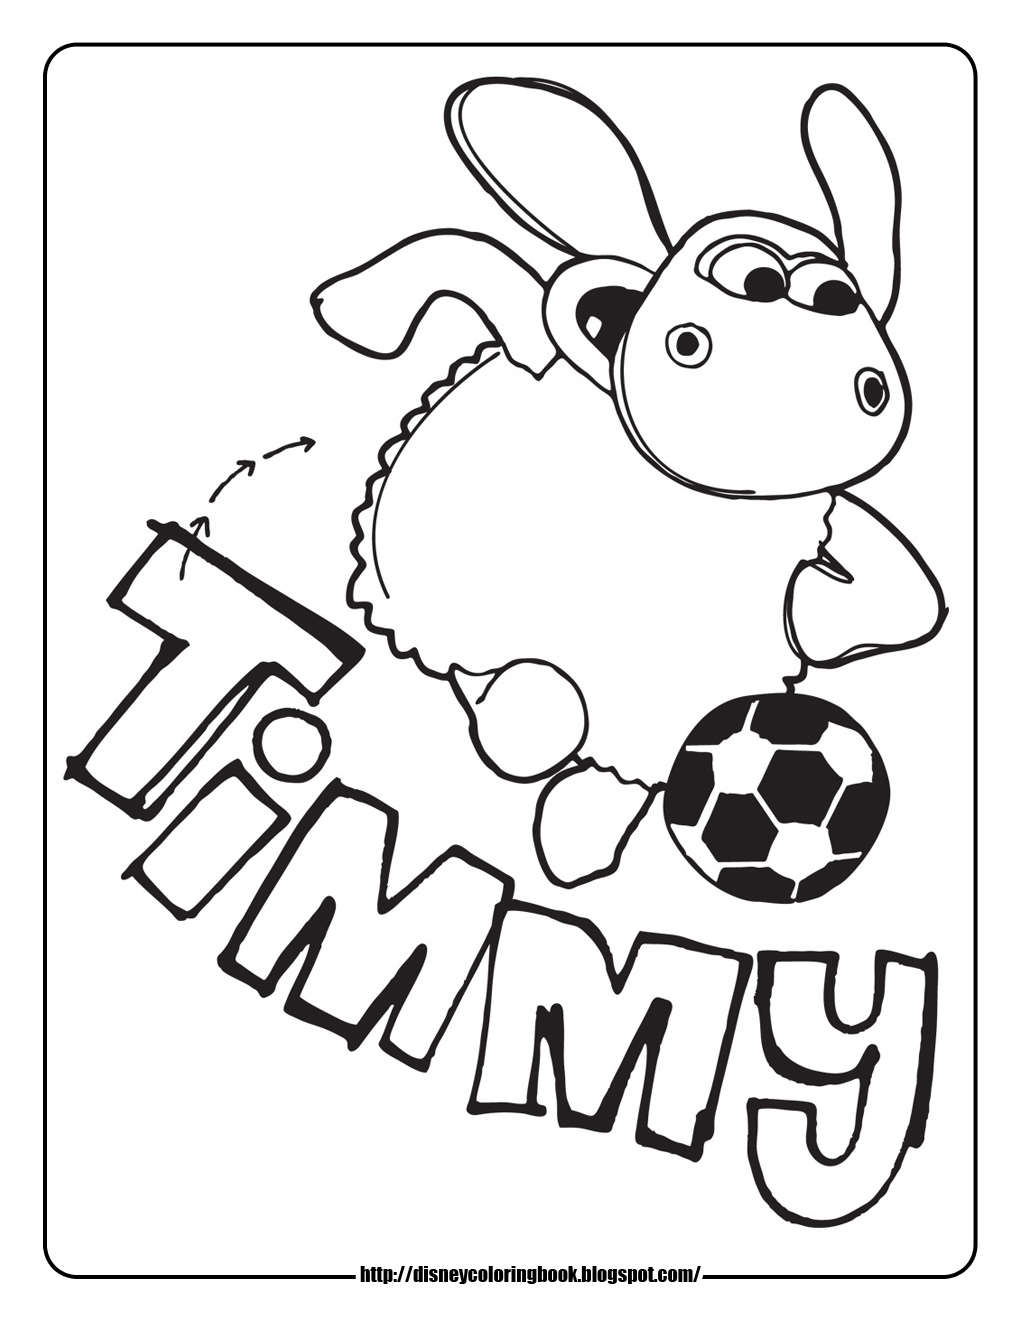 Disney Coloring Pages And Sheets For Kids Timmy Time 1 Free